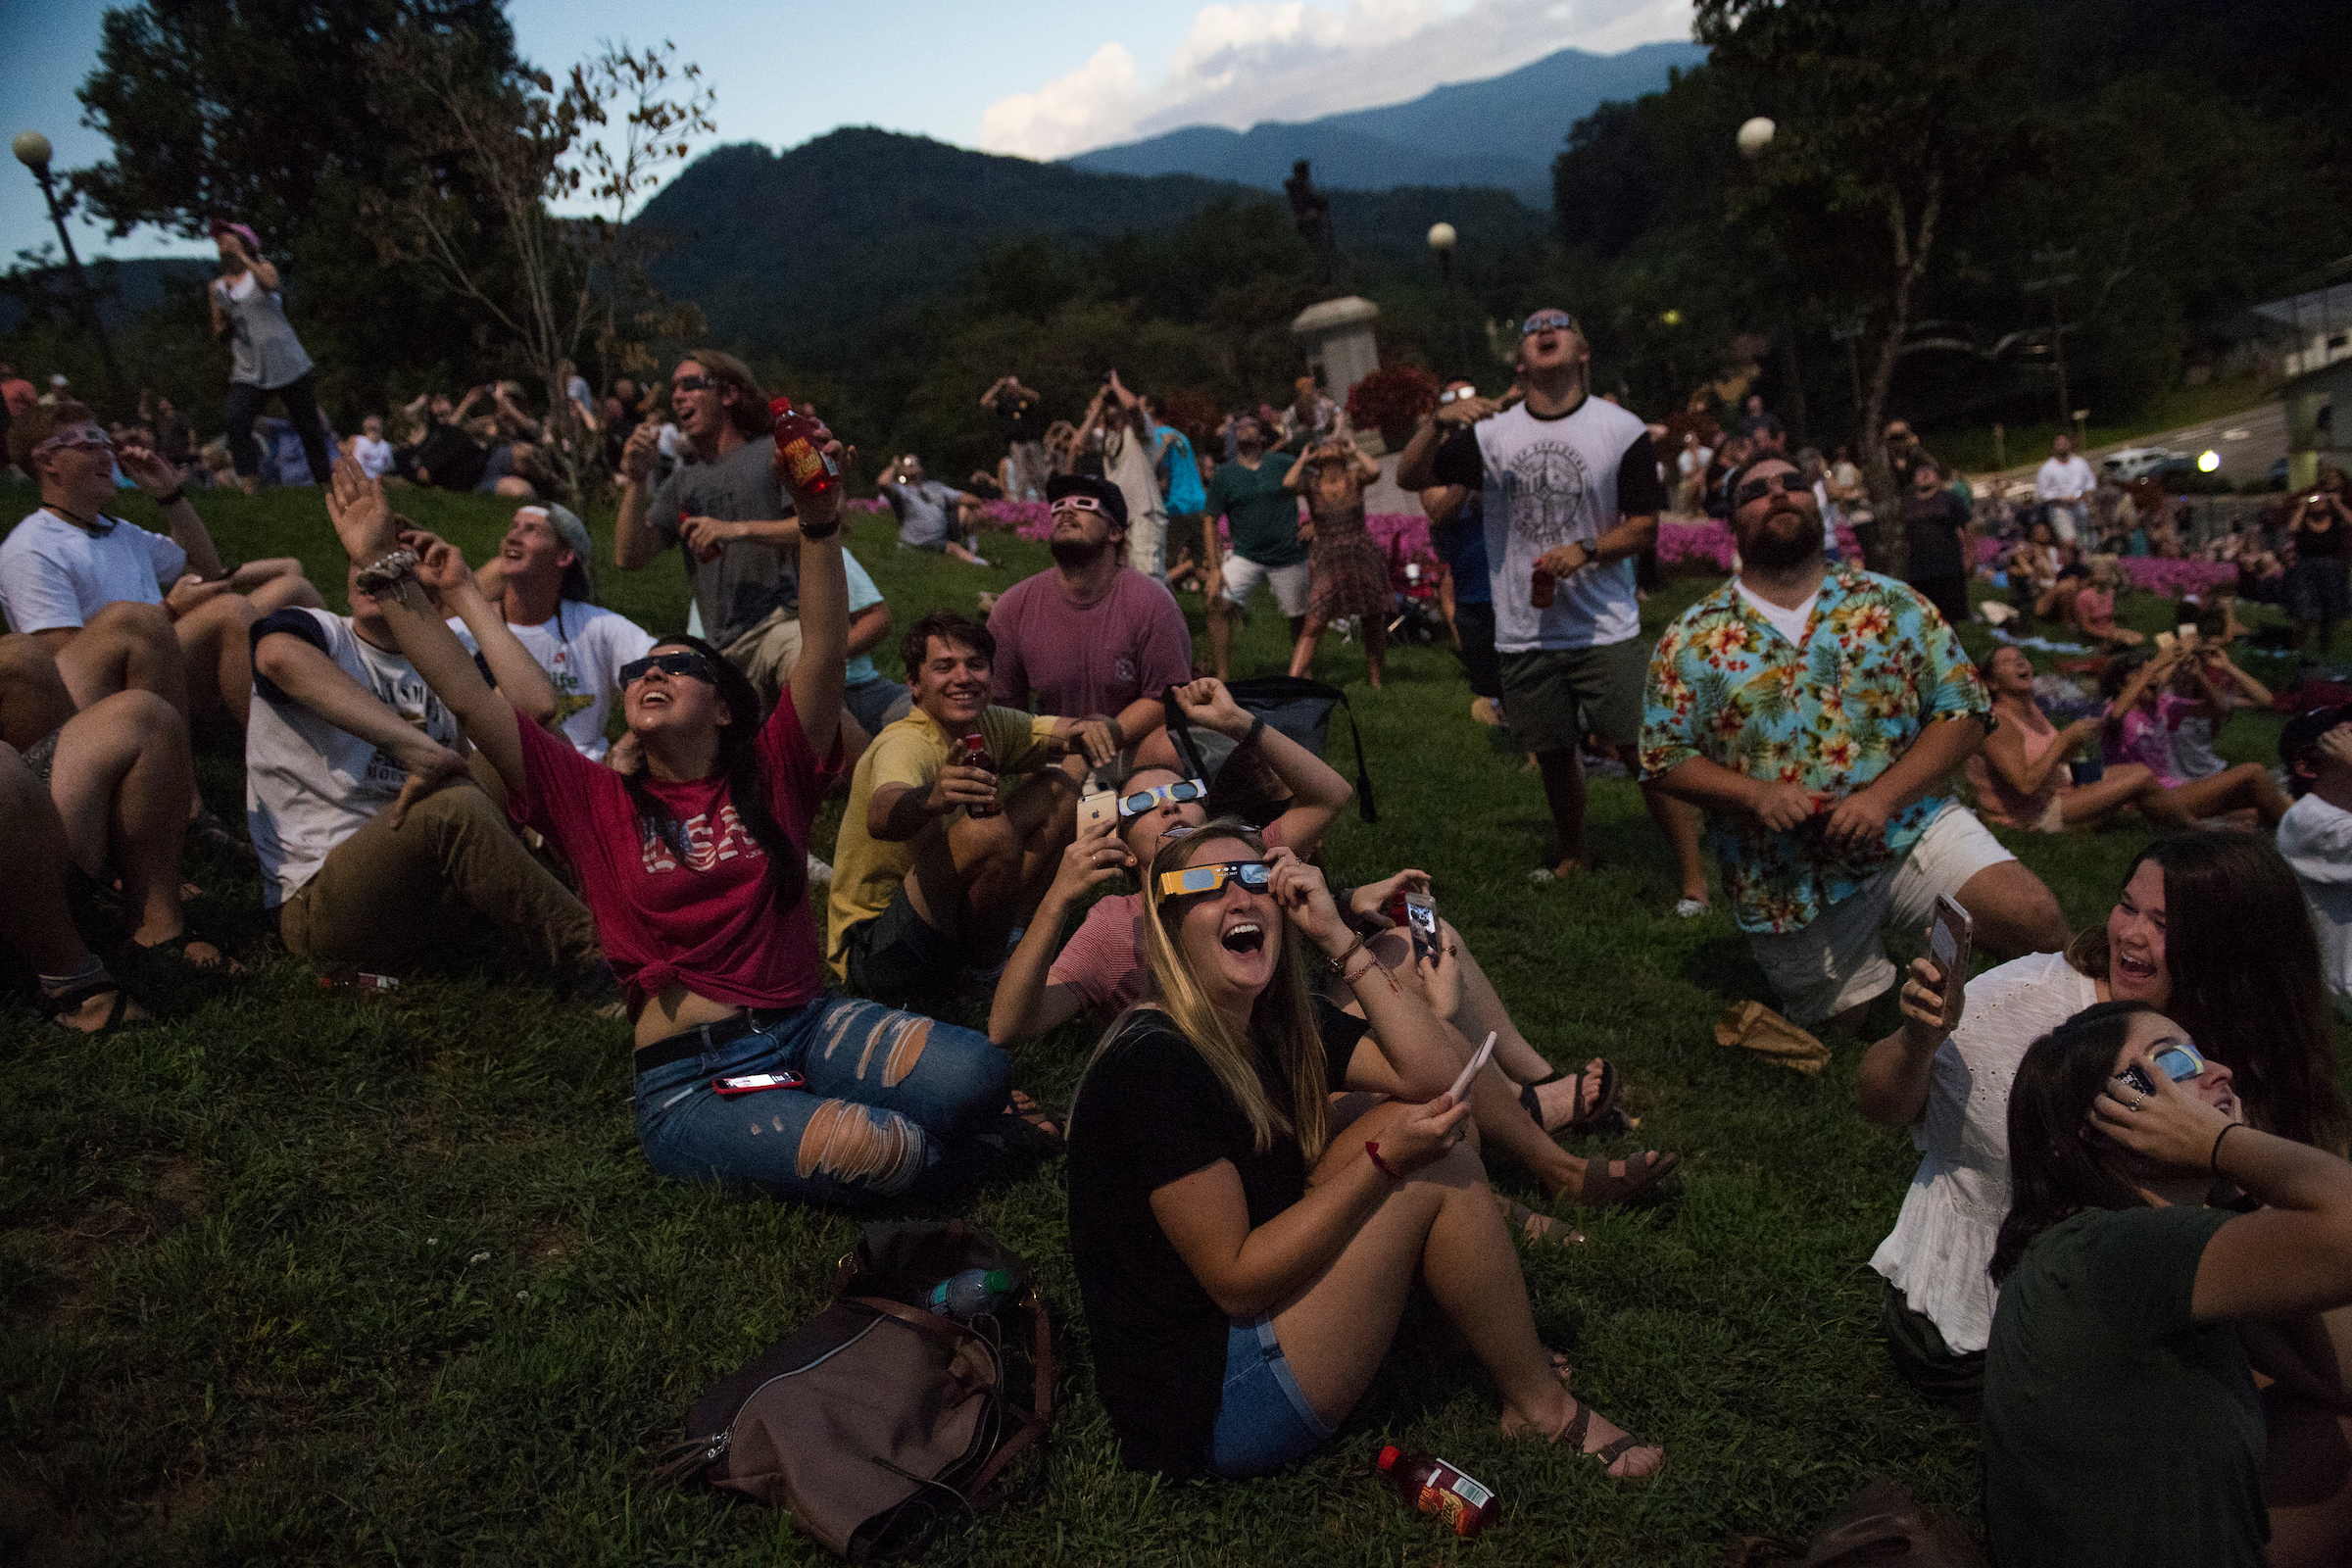 UNITED STATES - AUGUST 21: Spectators view the solar eclipse during the span of totality in Sylva, N.C., on August 21, 2017. The town lies in the path of totality. (Photo By Tom Williams/CQ Roll Call)